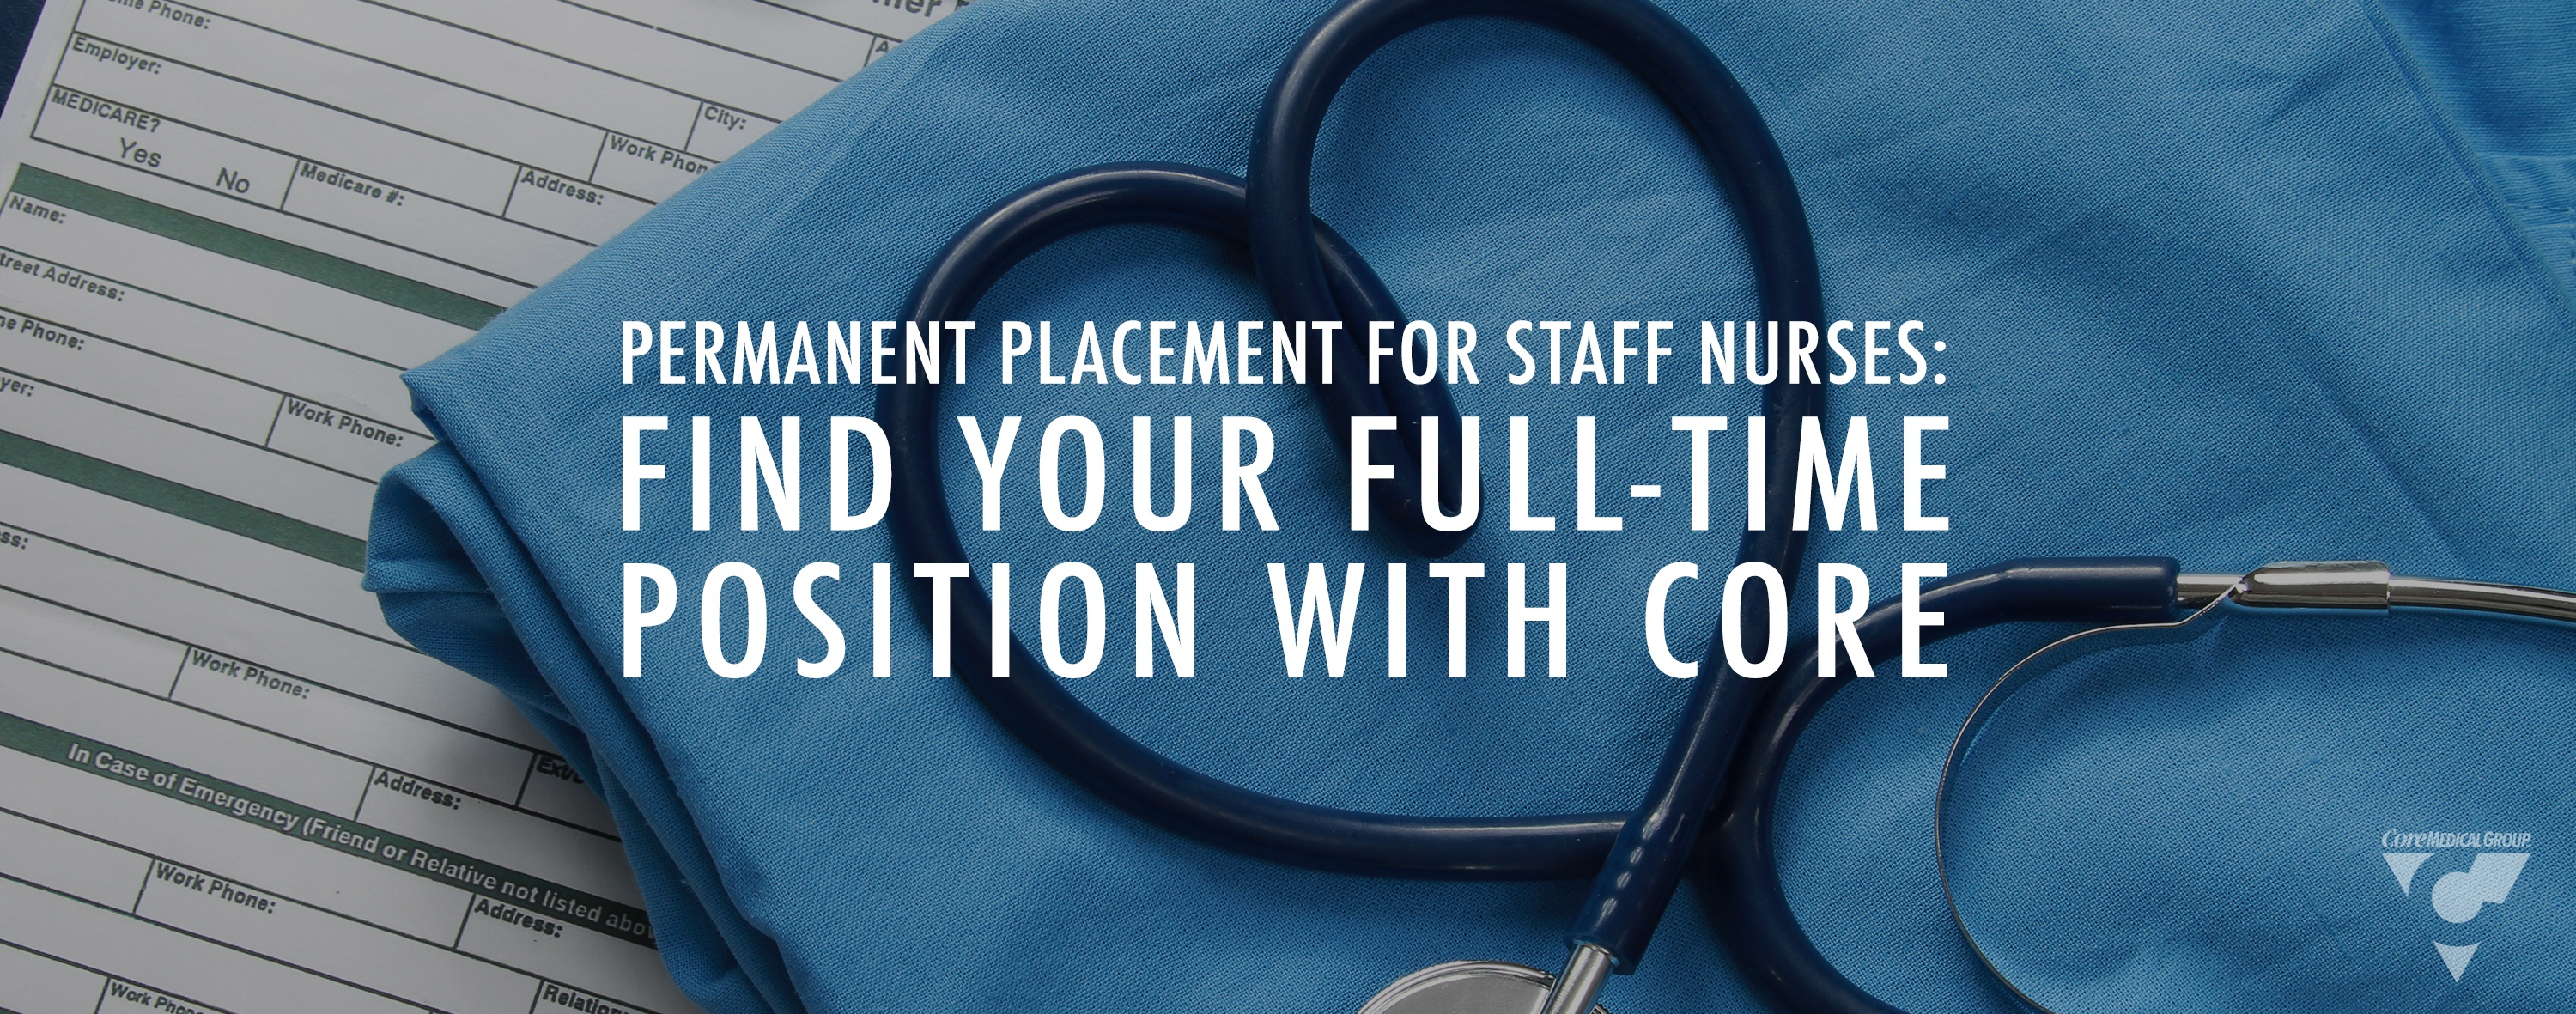 Permanent Placement for Staff Nurses